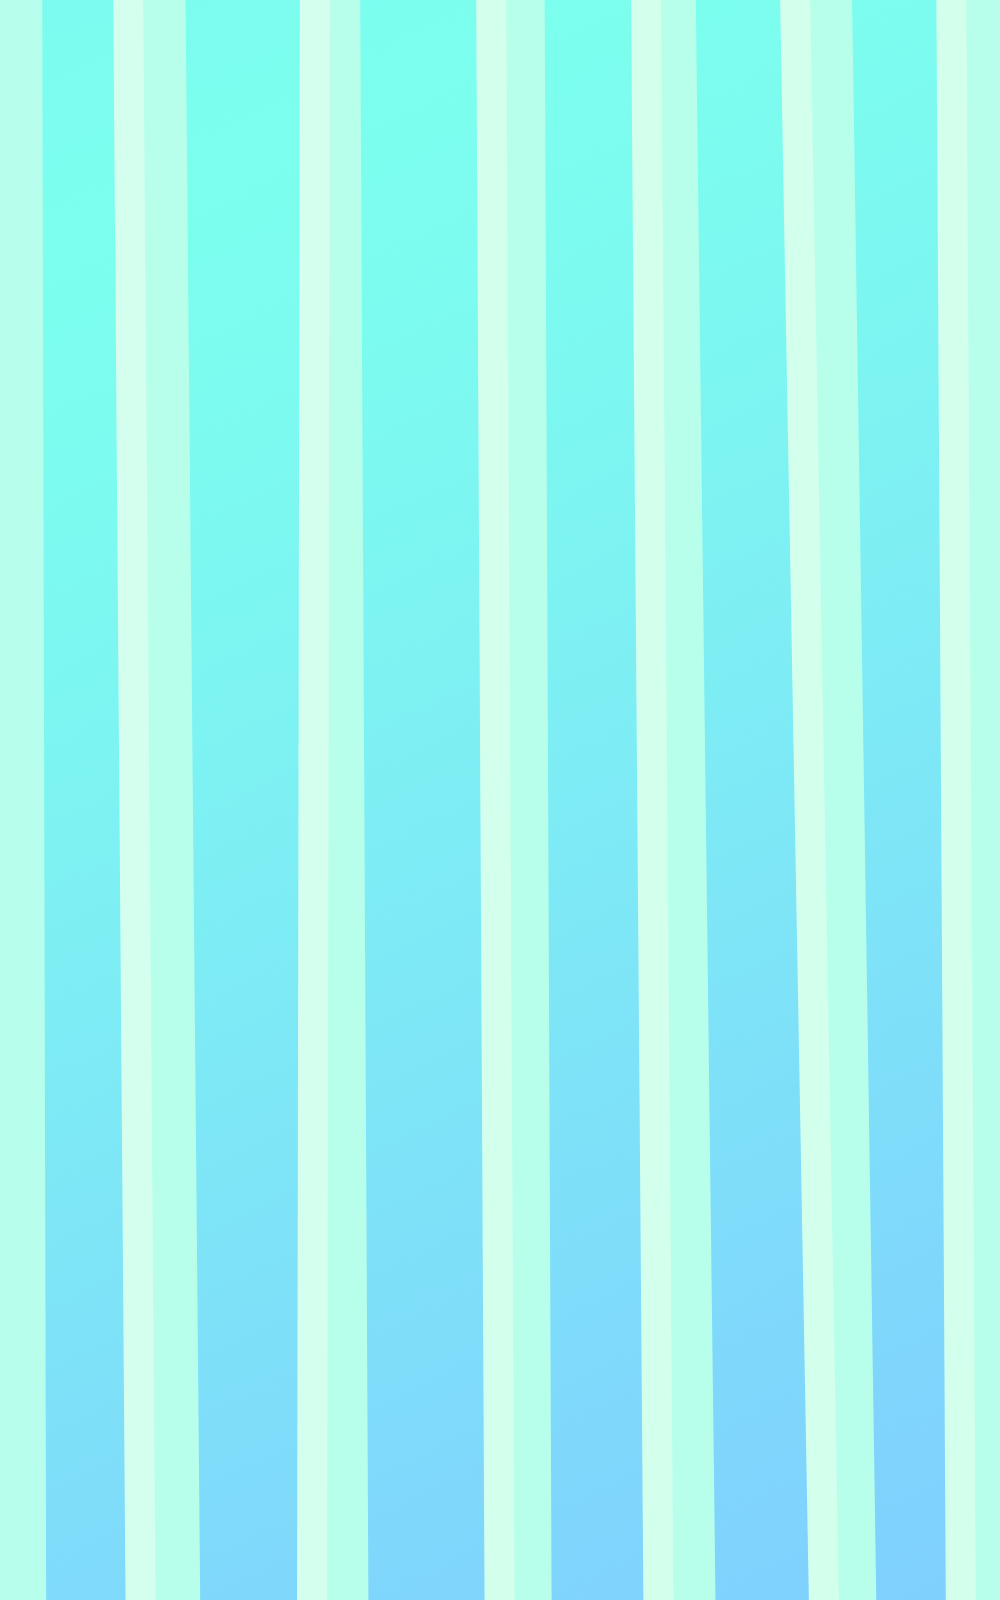 Blue stripes custom background by lonehuntress